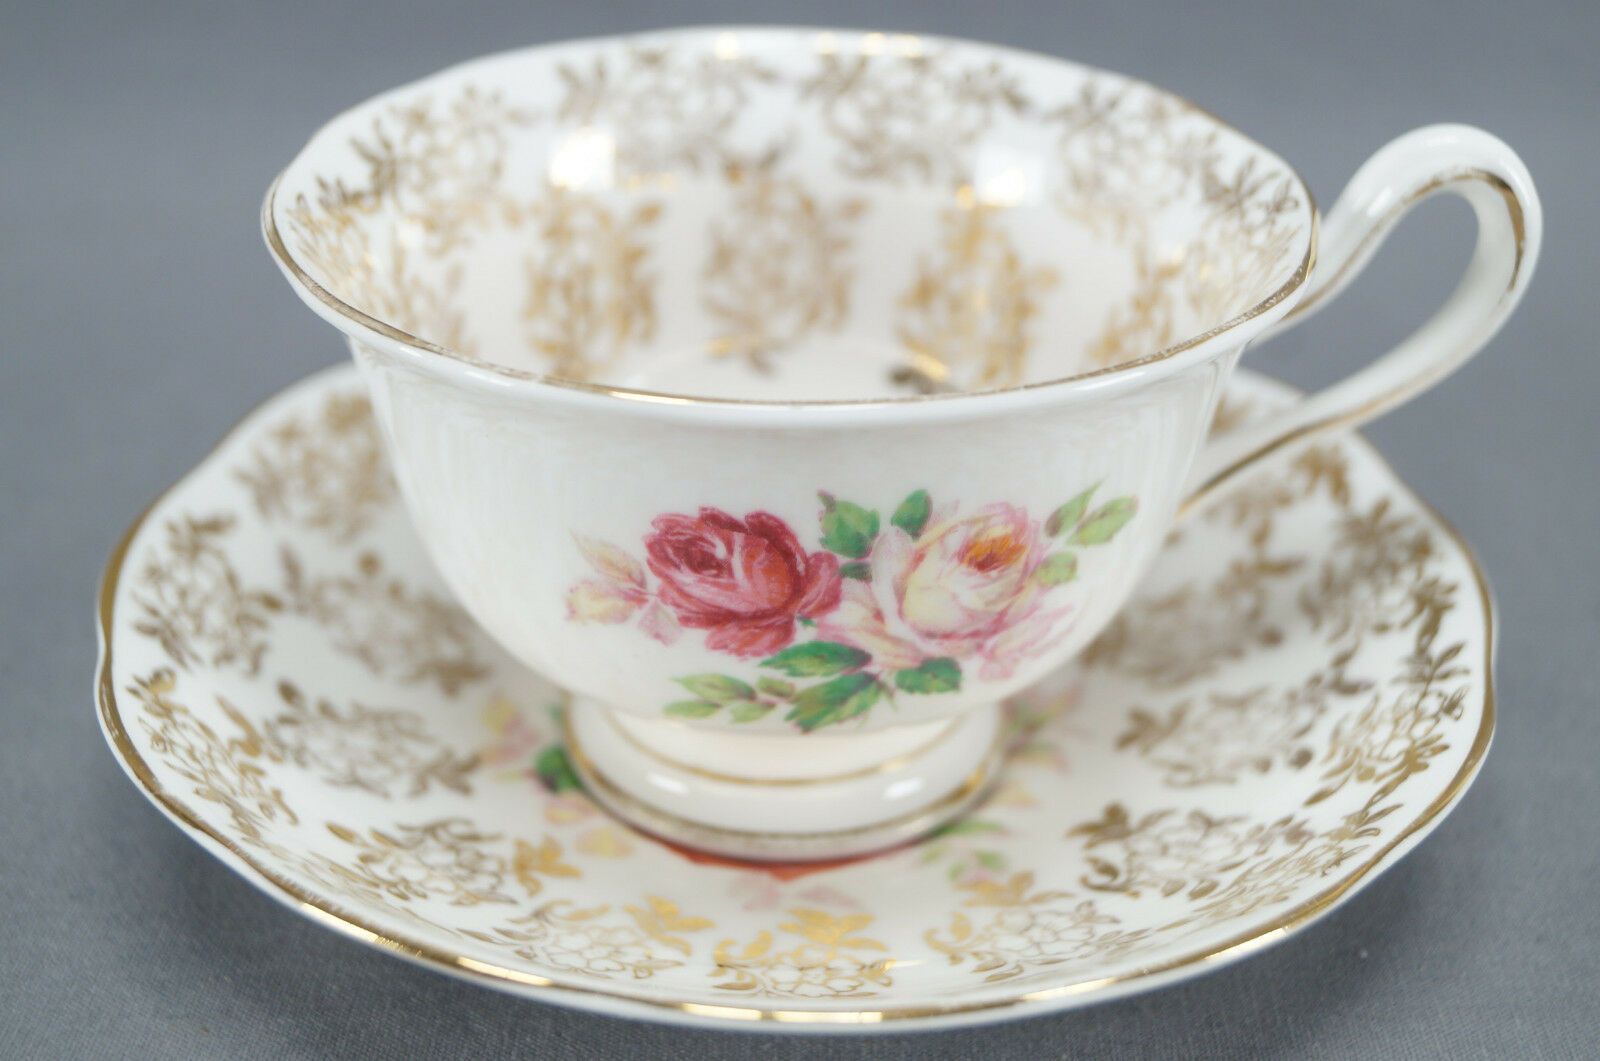 royal albert bone china pink roses gold floral chintz tea cup saucer c 1950 cad. Black Bedroom Furniture Sets. Home Design Ideas